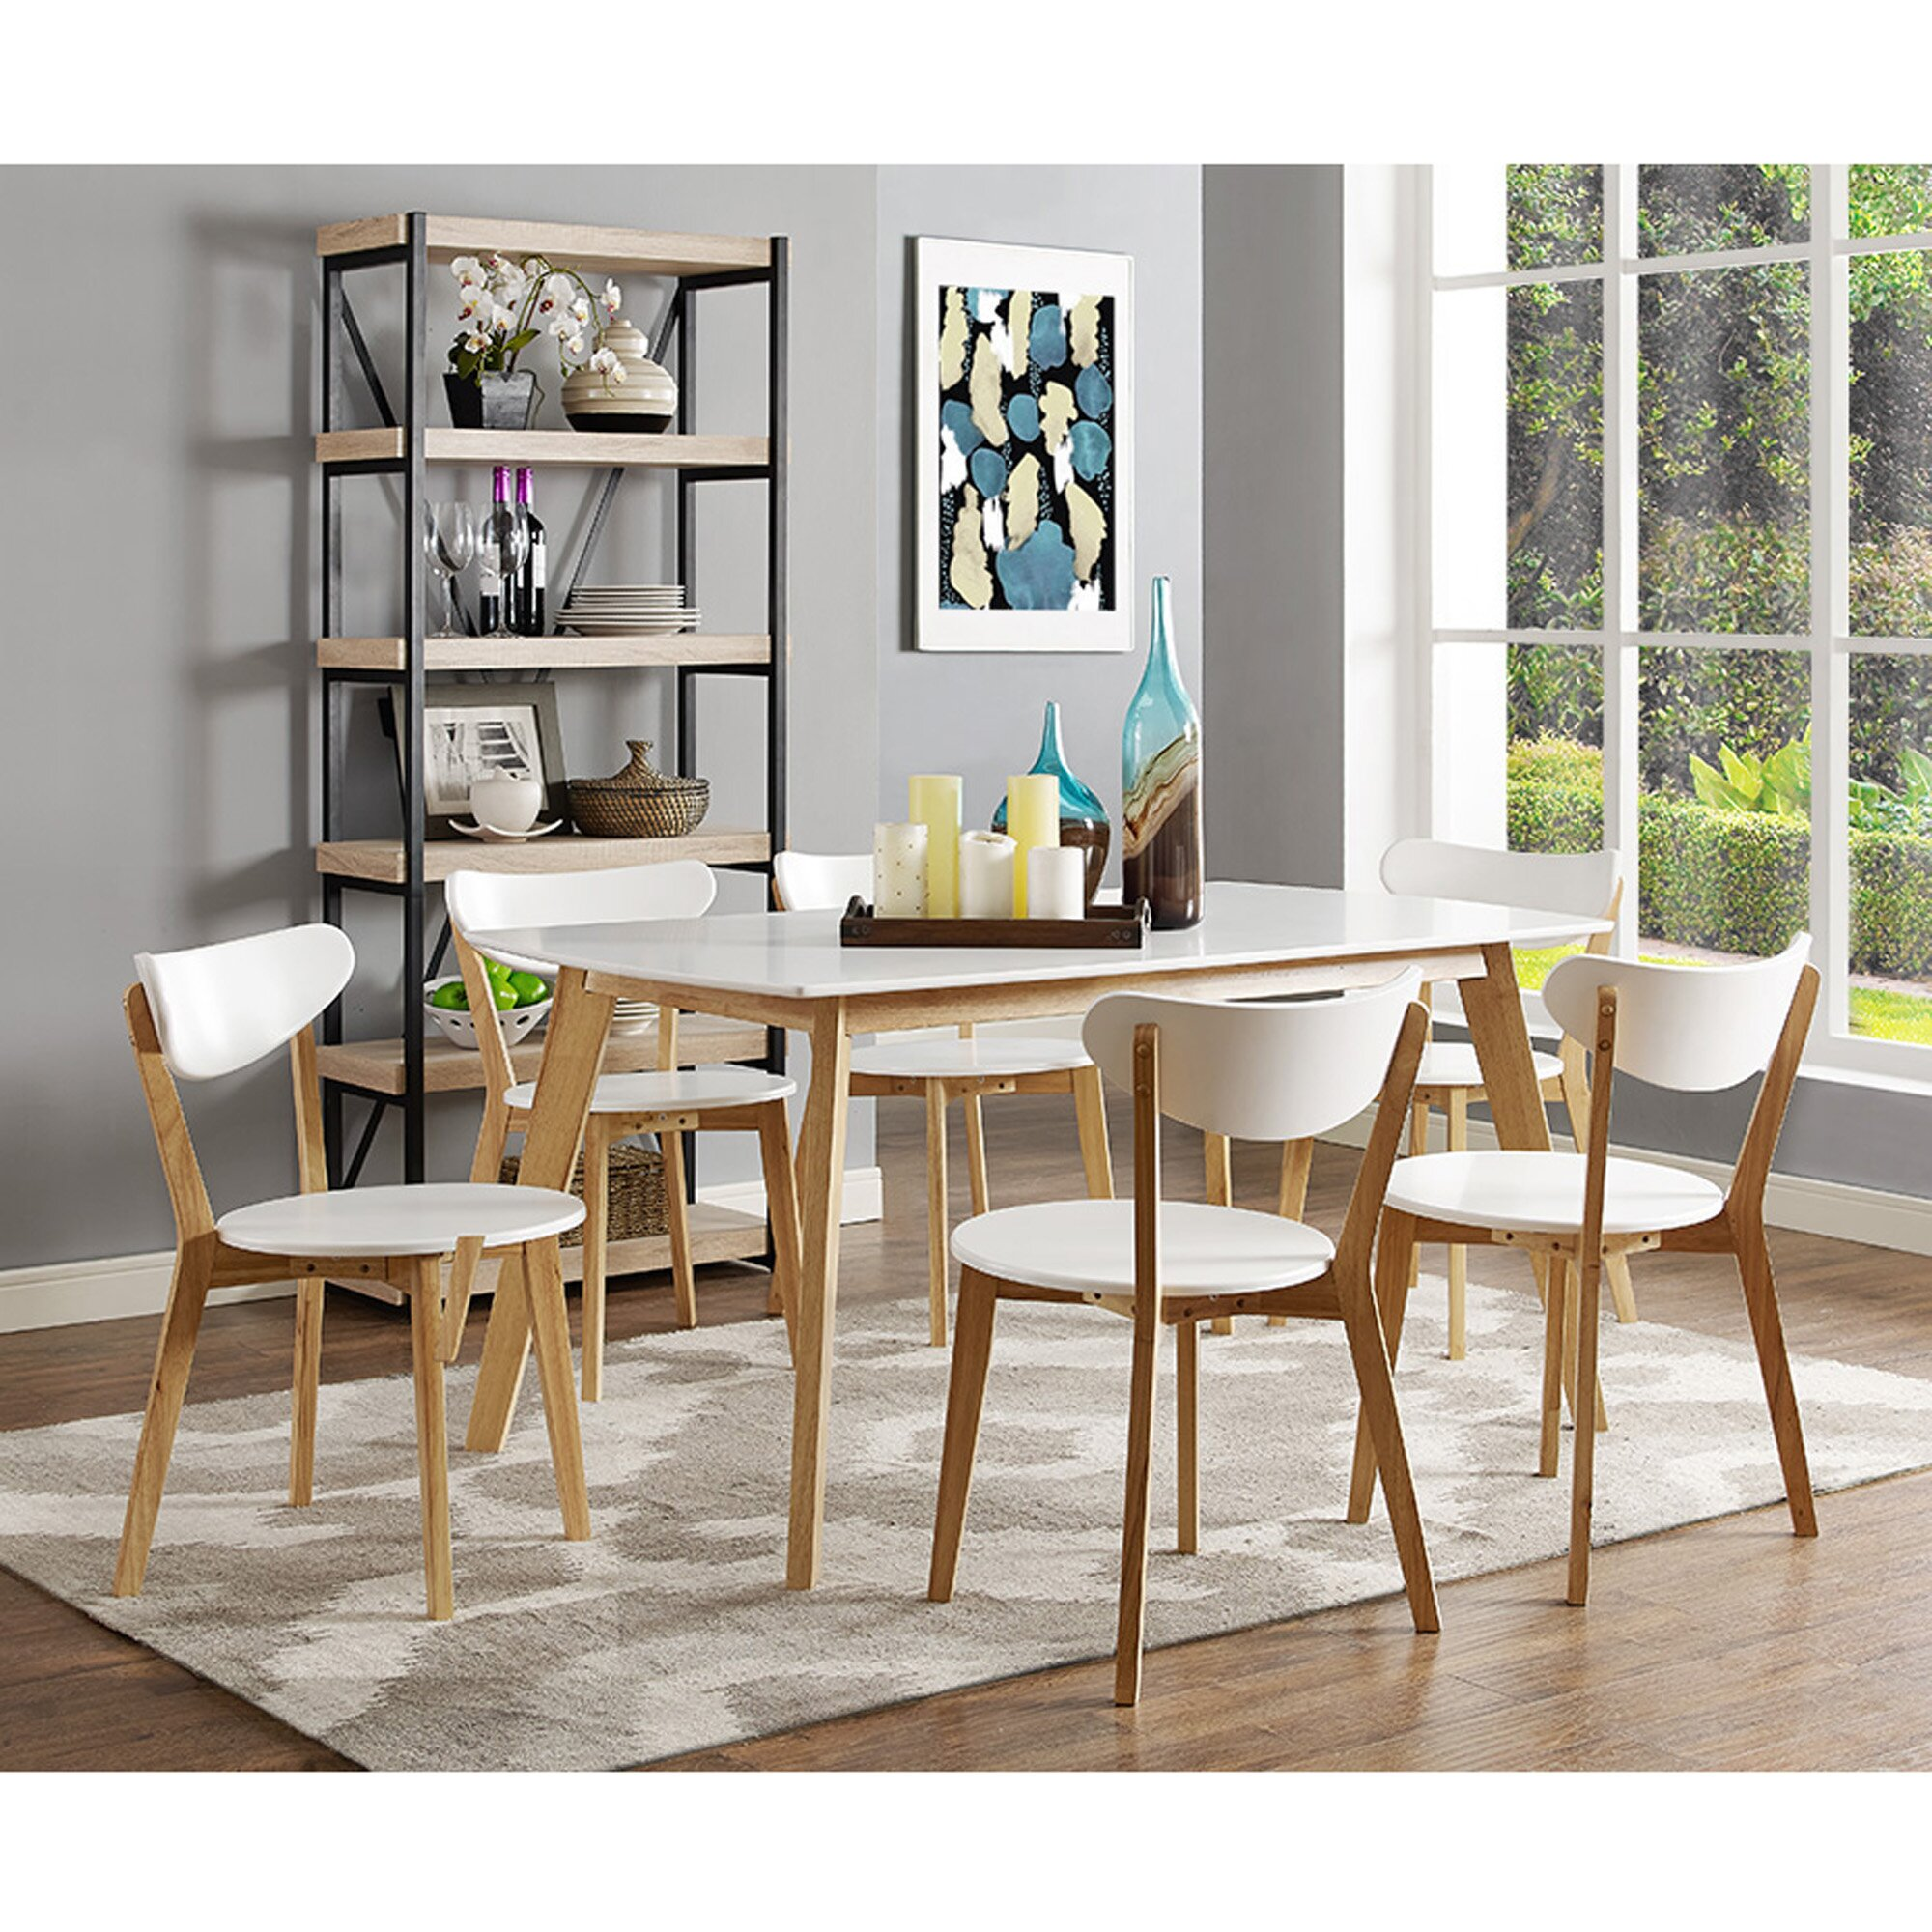 Retro Extending Dining Table Retro Extendable Dining Table Dining Table Ideas